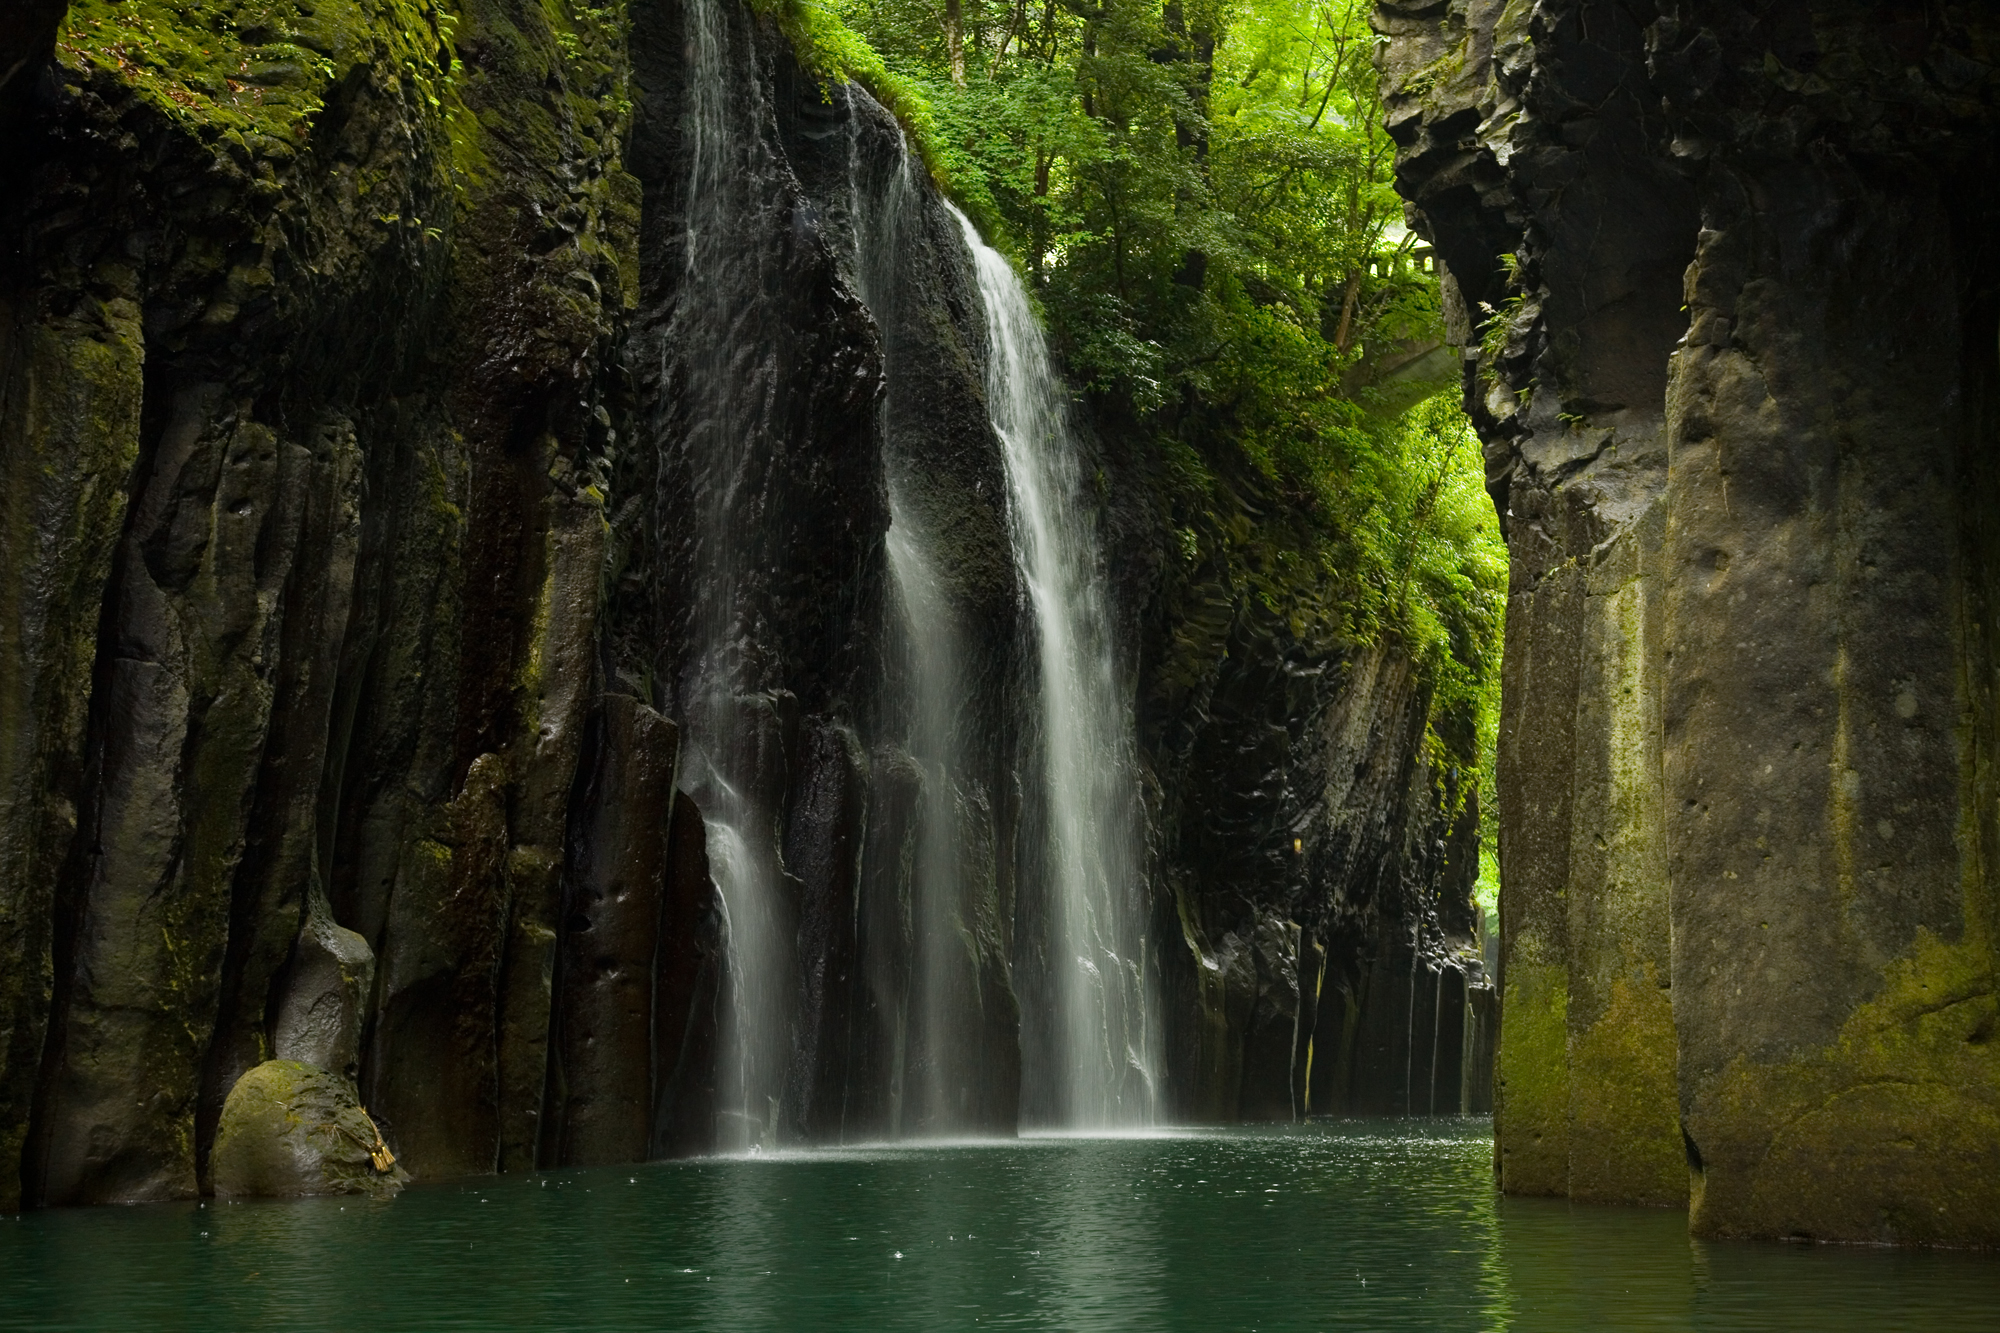 Takachiho Japan  City new picture : TAKACHIHO,JAPAN | FAVOURITE or INTERESTING PLACES & SPACES | Pintere ...